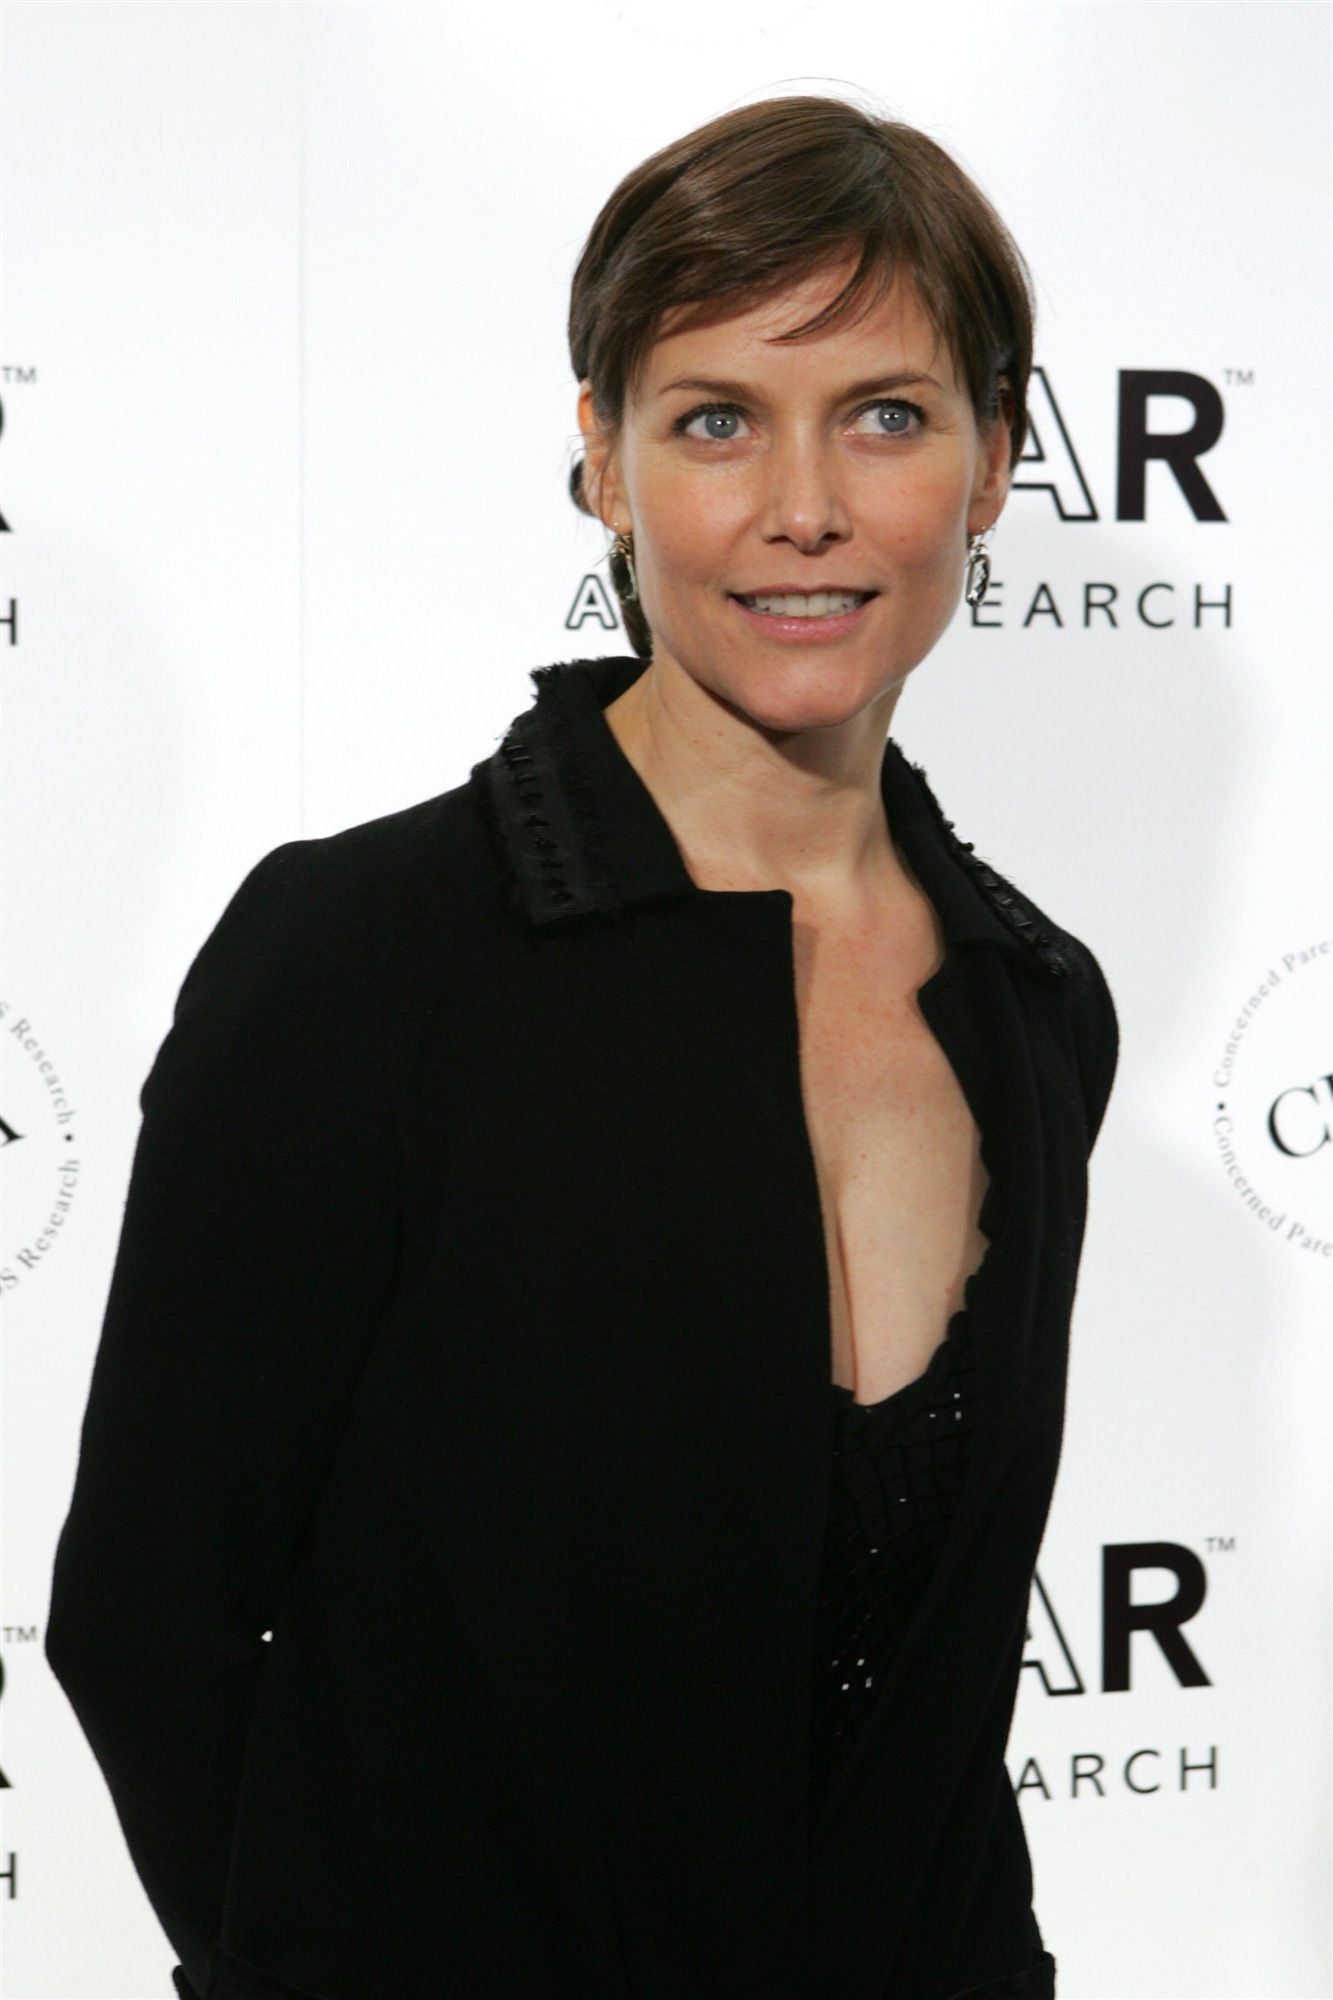 carey lowell wikipedia